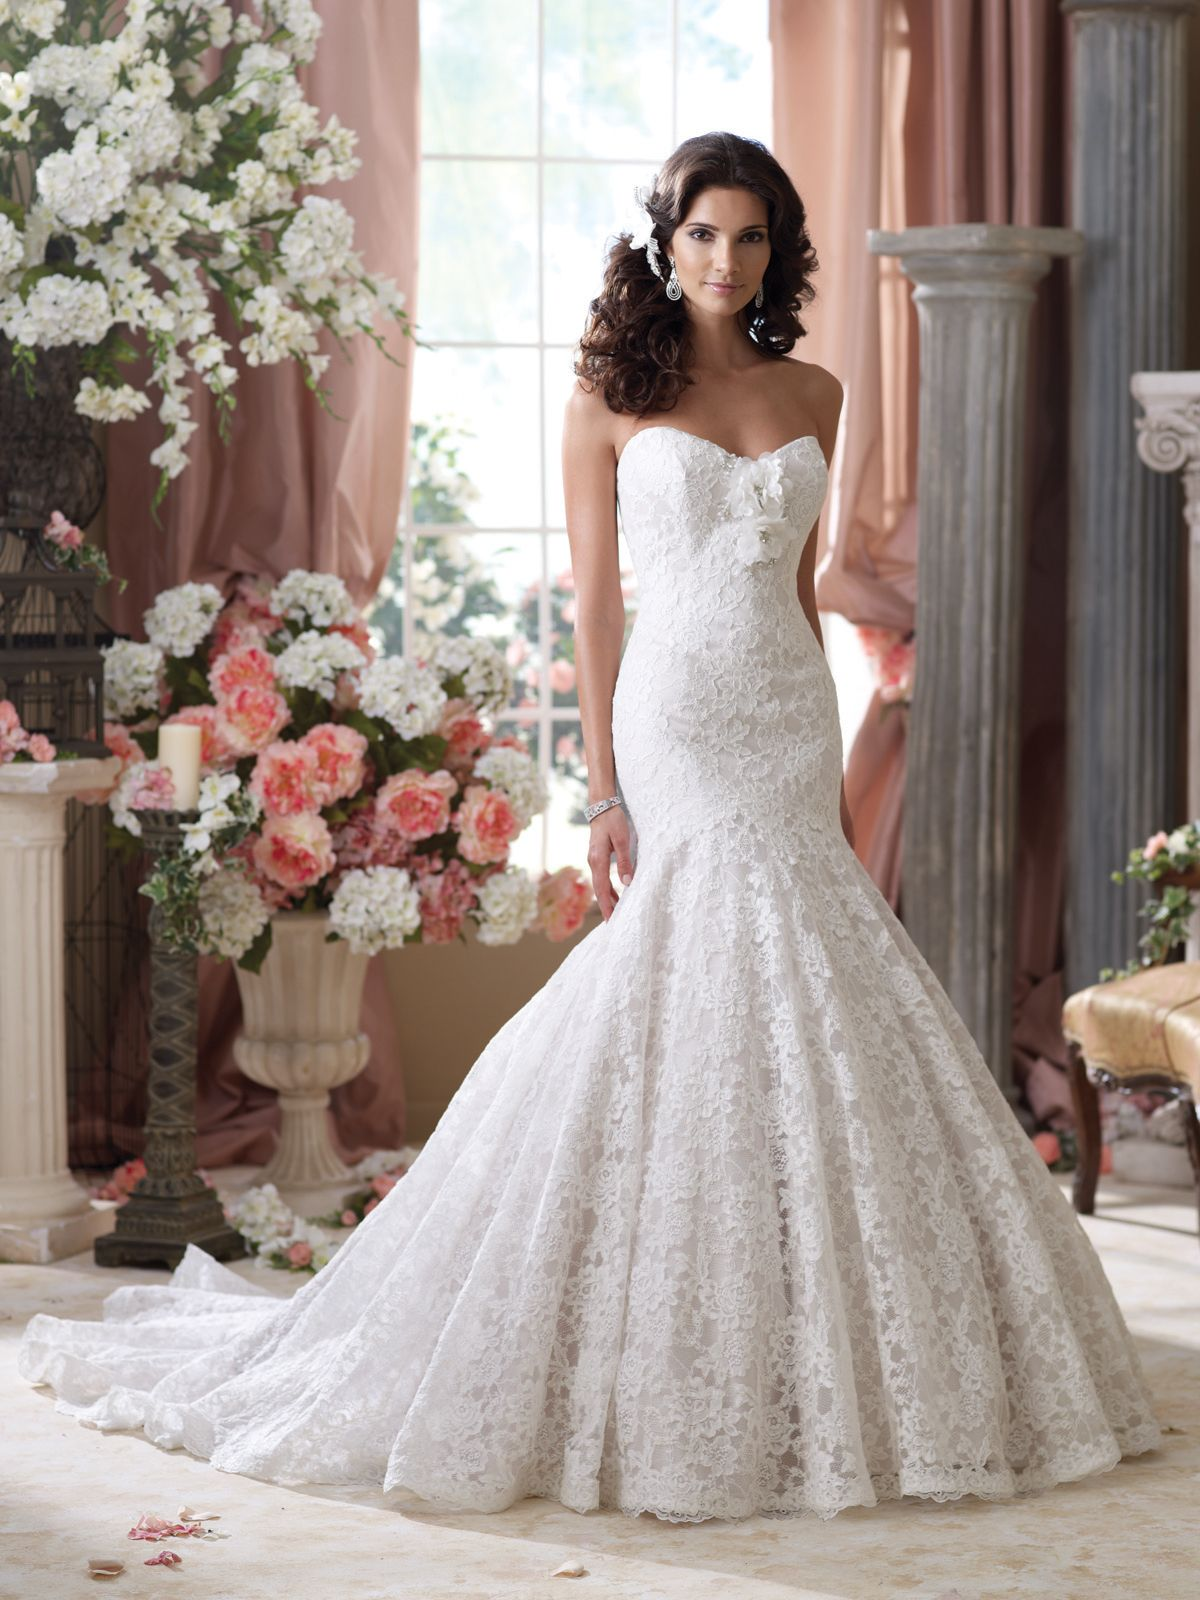 Strapless Allover Alencon Lace Mermaid Wedding Dress Sweetheart Neckline Features Detachable Hand Beaded Three